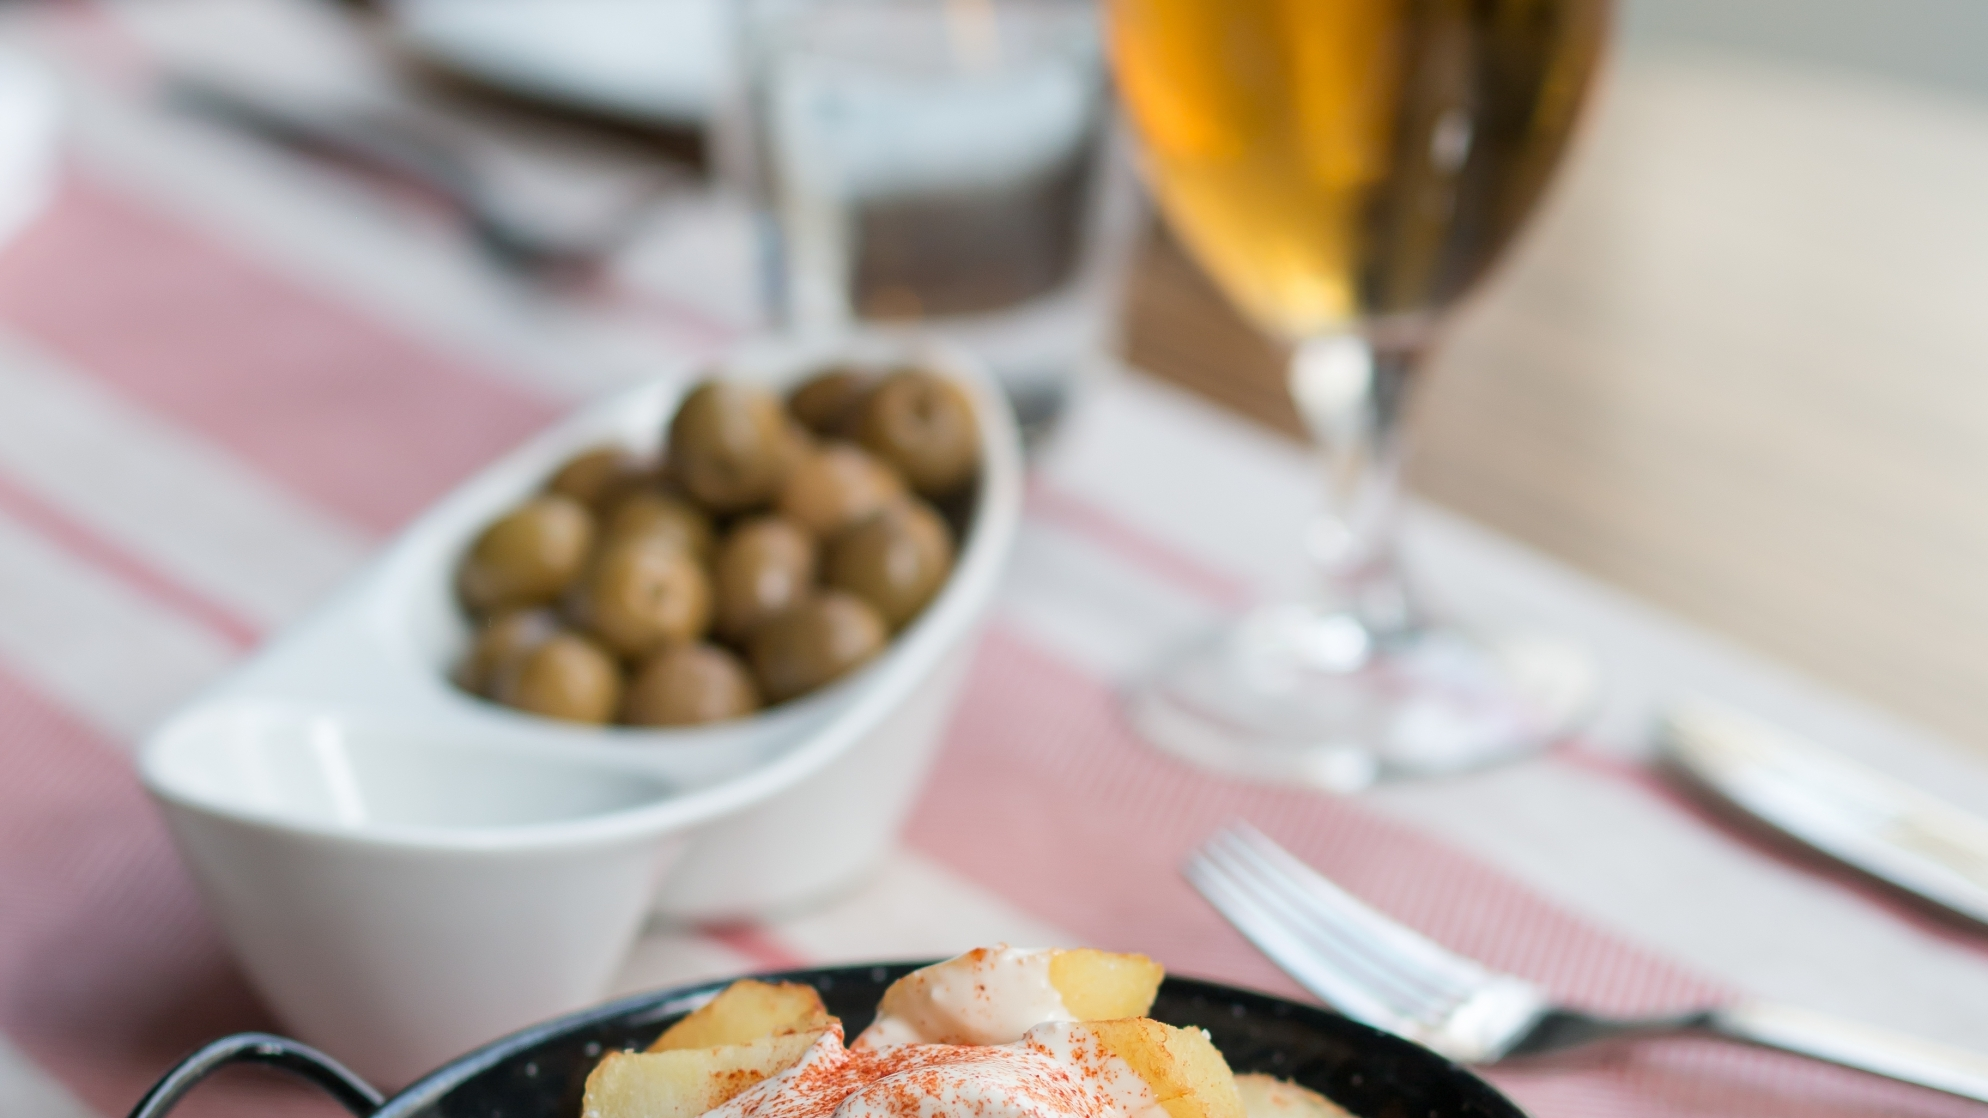 Beer and tapas | CentOnzeRestaurant